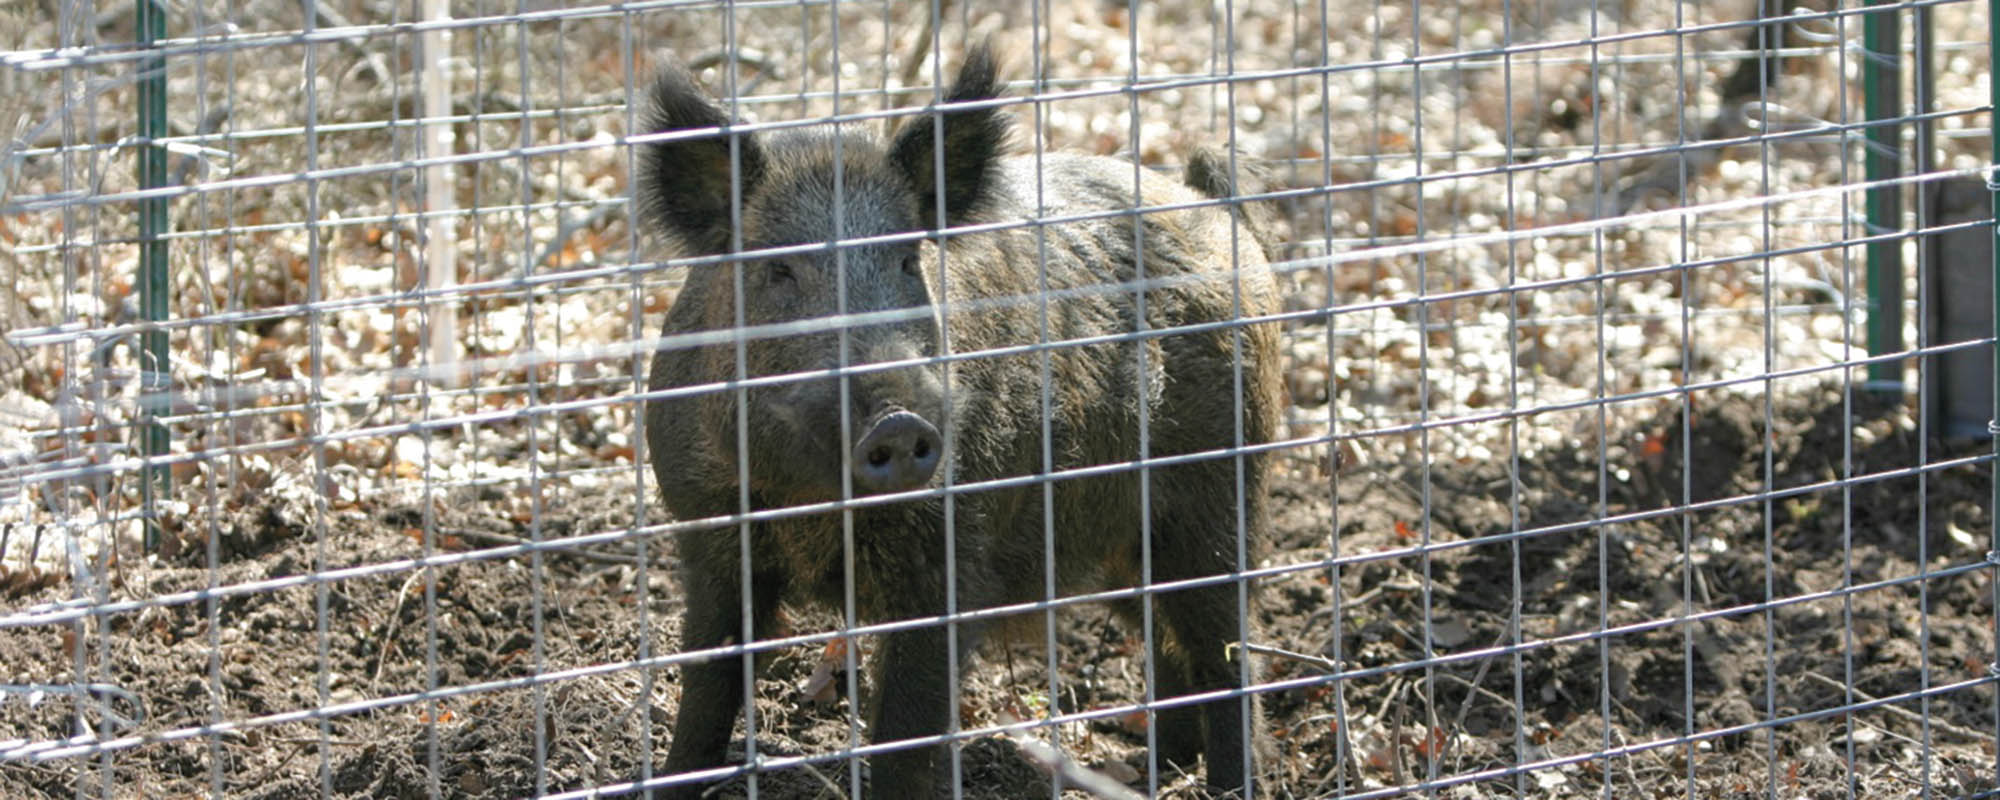 preparation increases pig trapping effectiveness